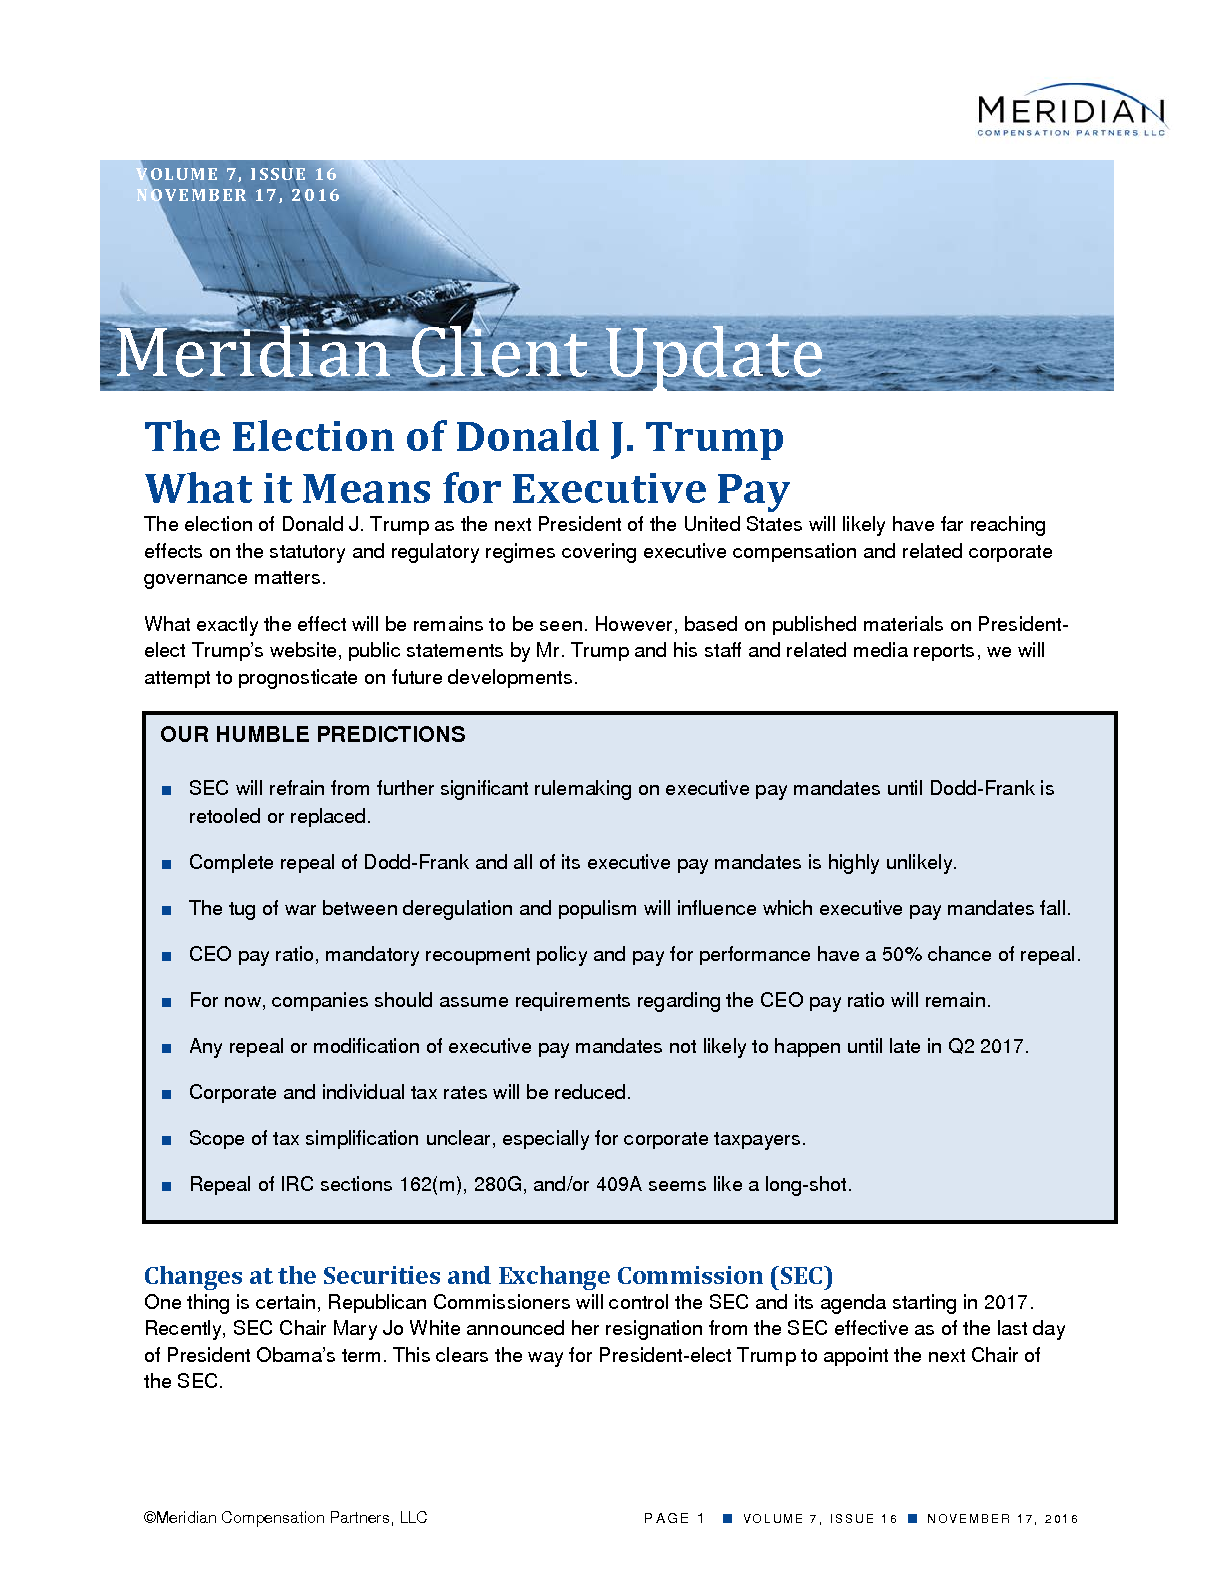 The Election of Donald J. Trump—What it Means for Executive Pay (PDF)